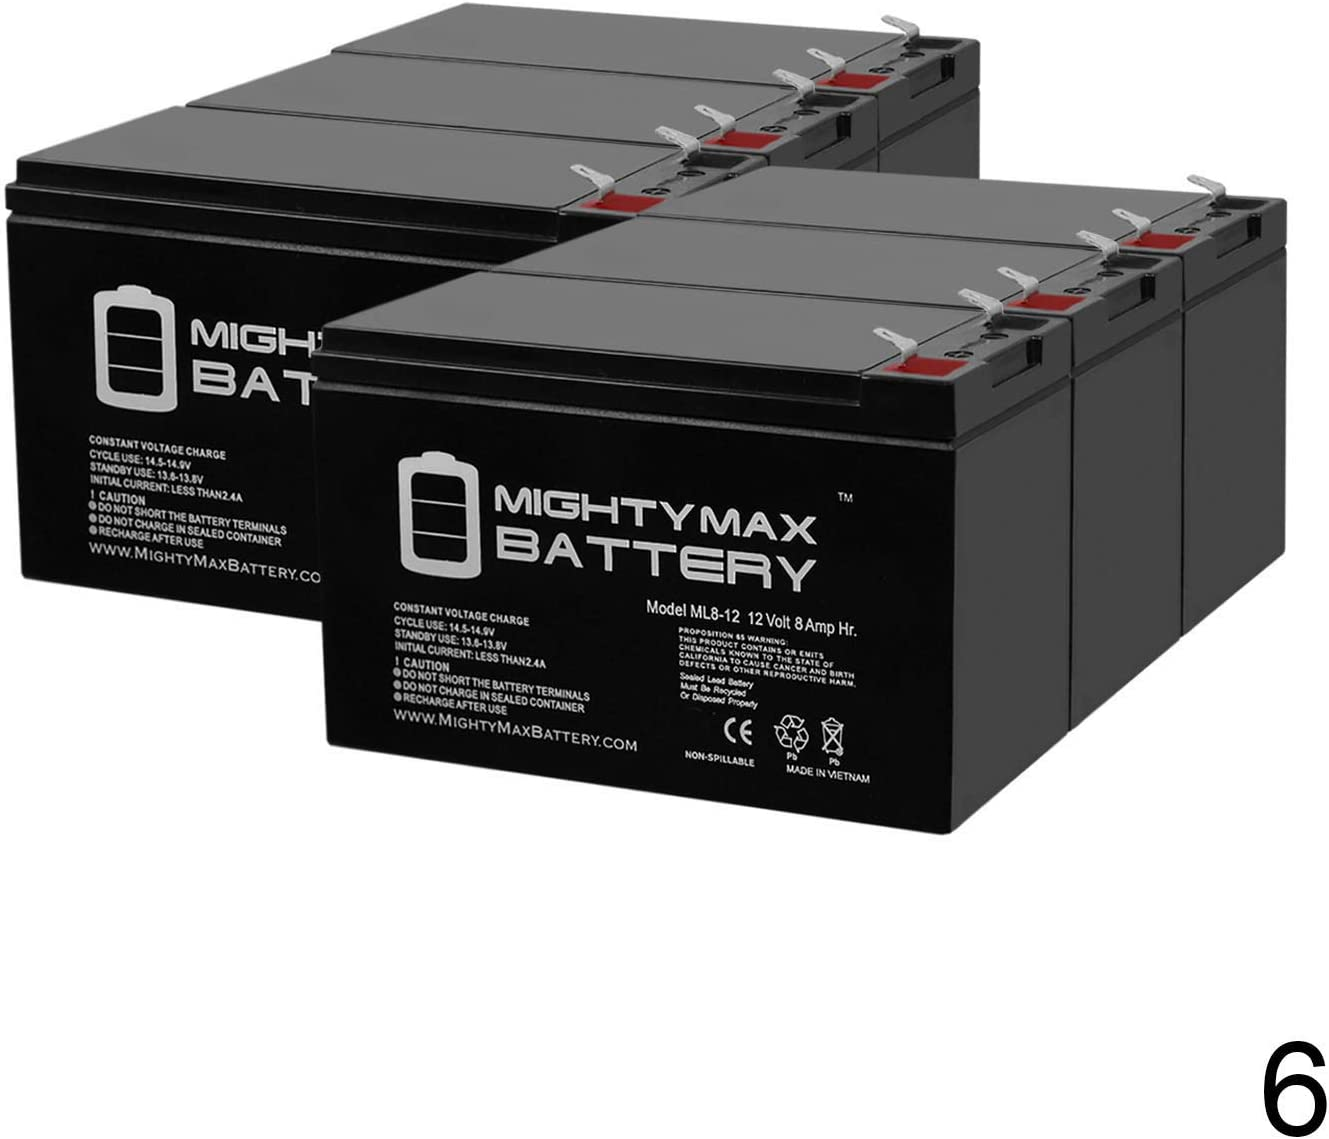 Mighty Max Battery 12V 8Ah for Smart-UPS SC 1500VA 12V-2U Rackmount-Tower SC1500-6 Pack Brand Product